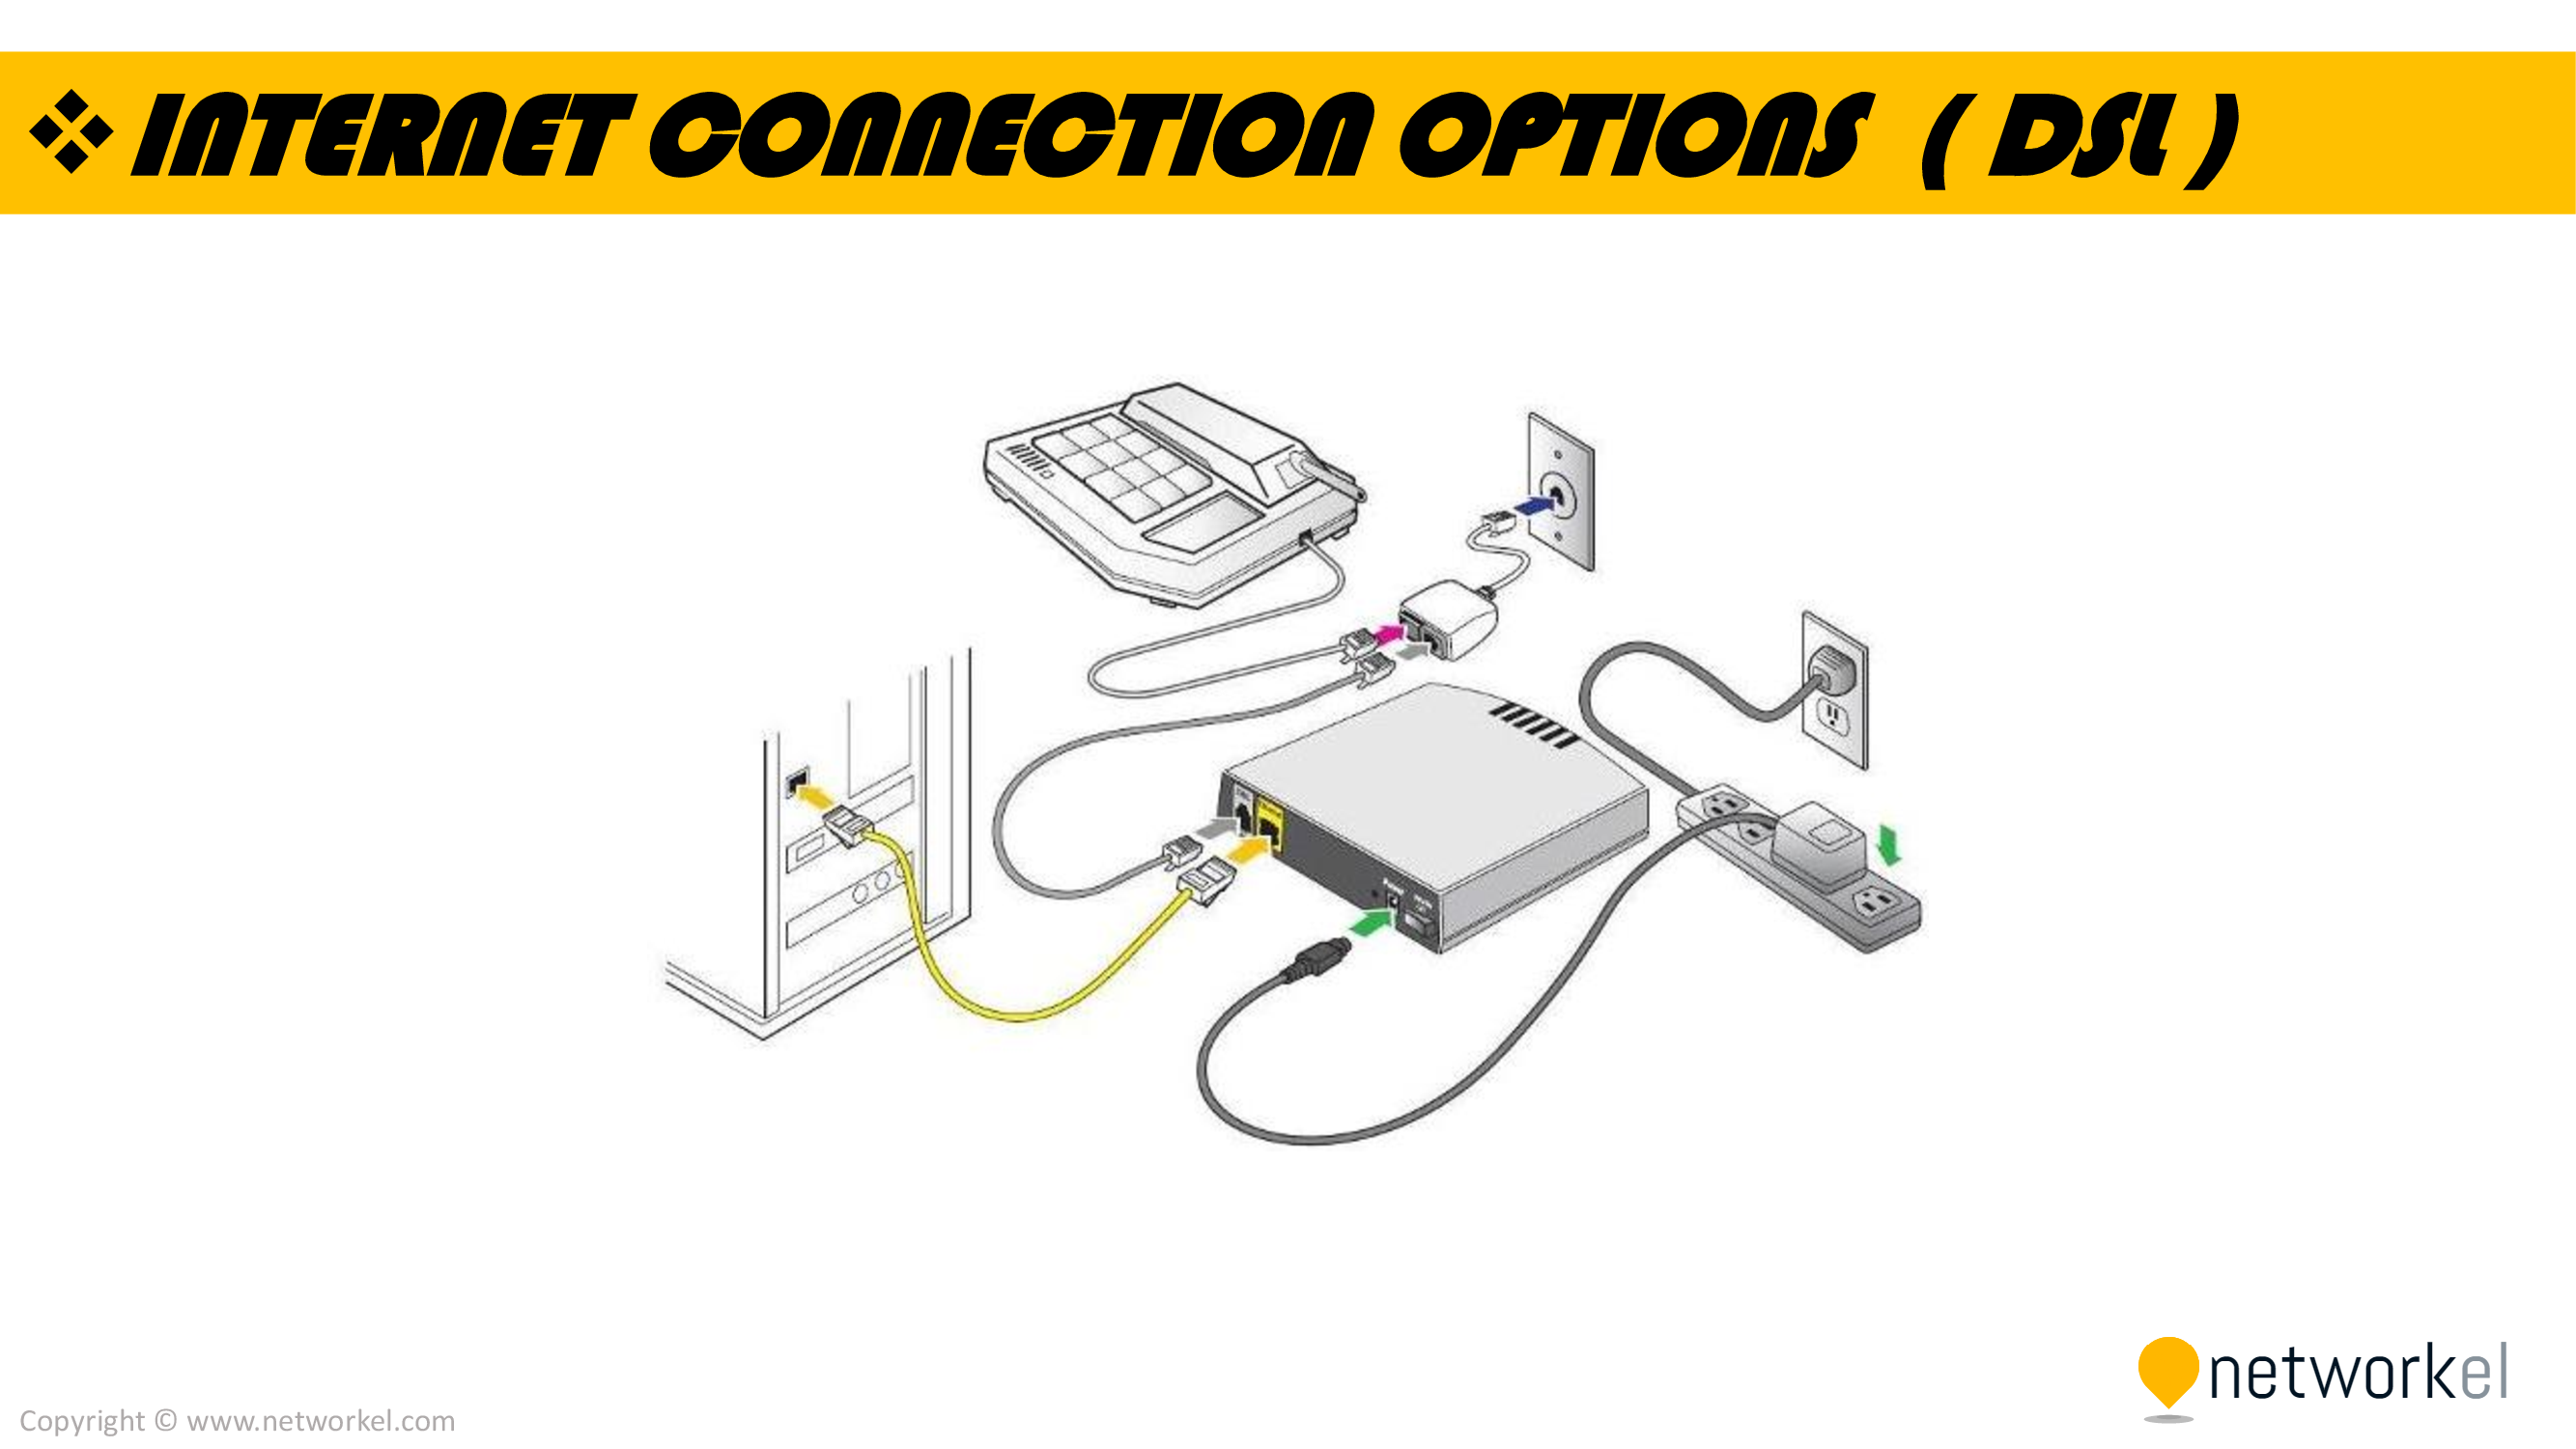 medium resolution of internet connection options dsl connection internet